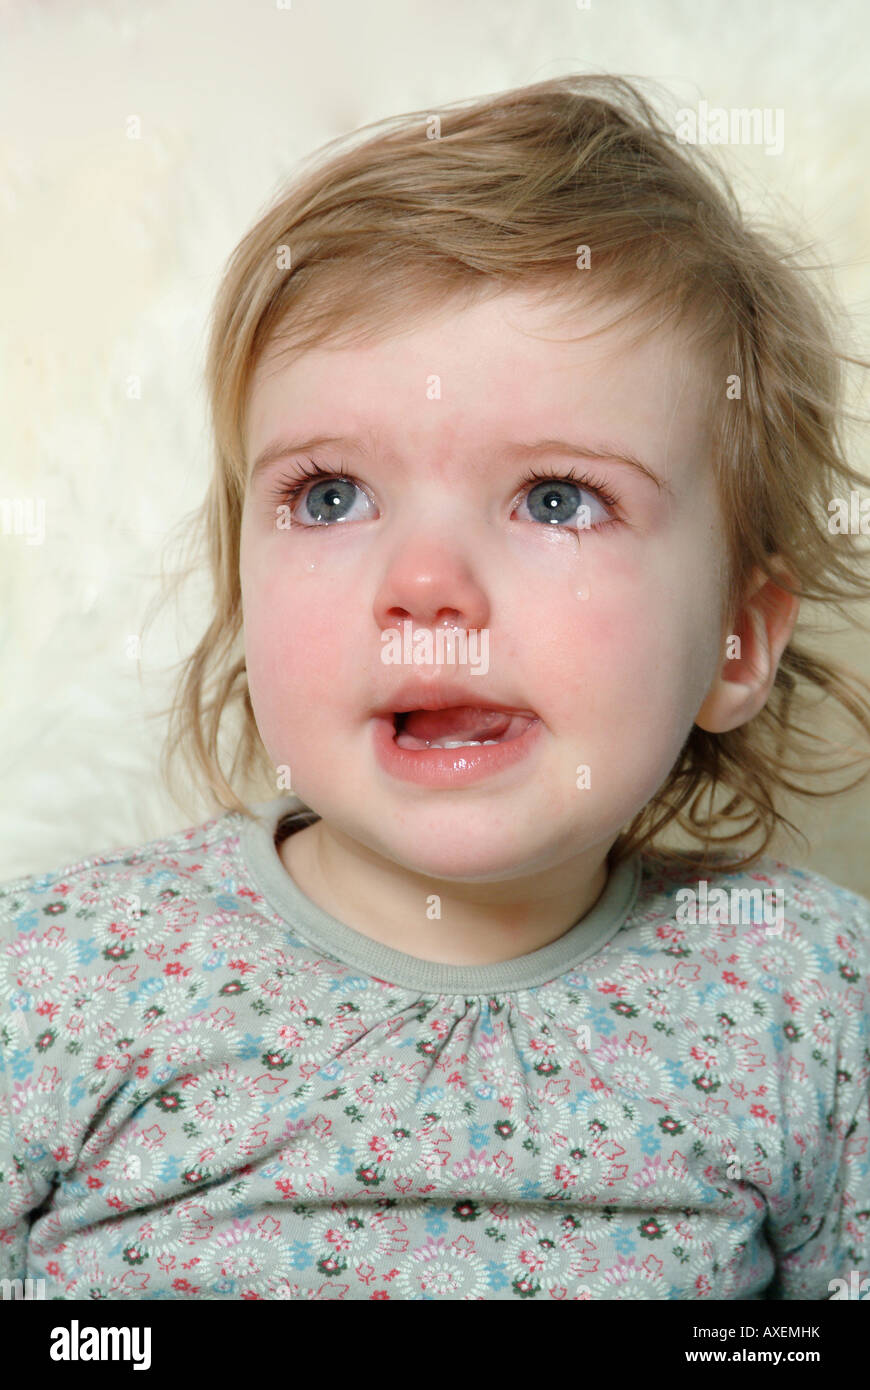 Little girl crying sitting against fur rug - Stock Image